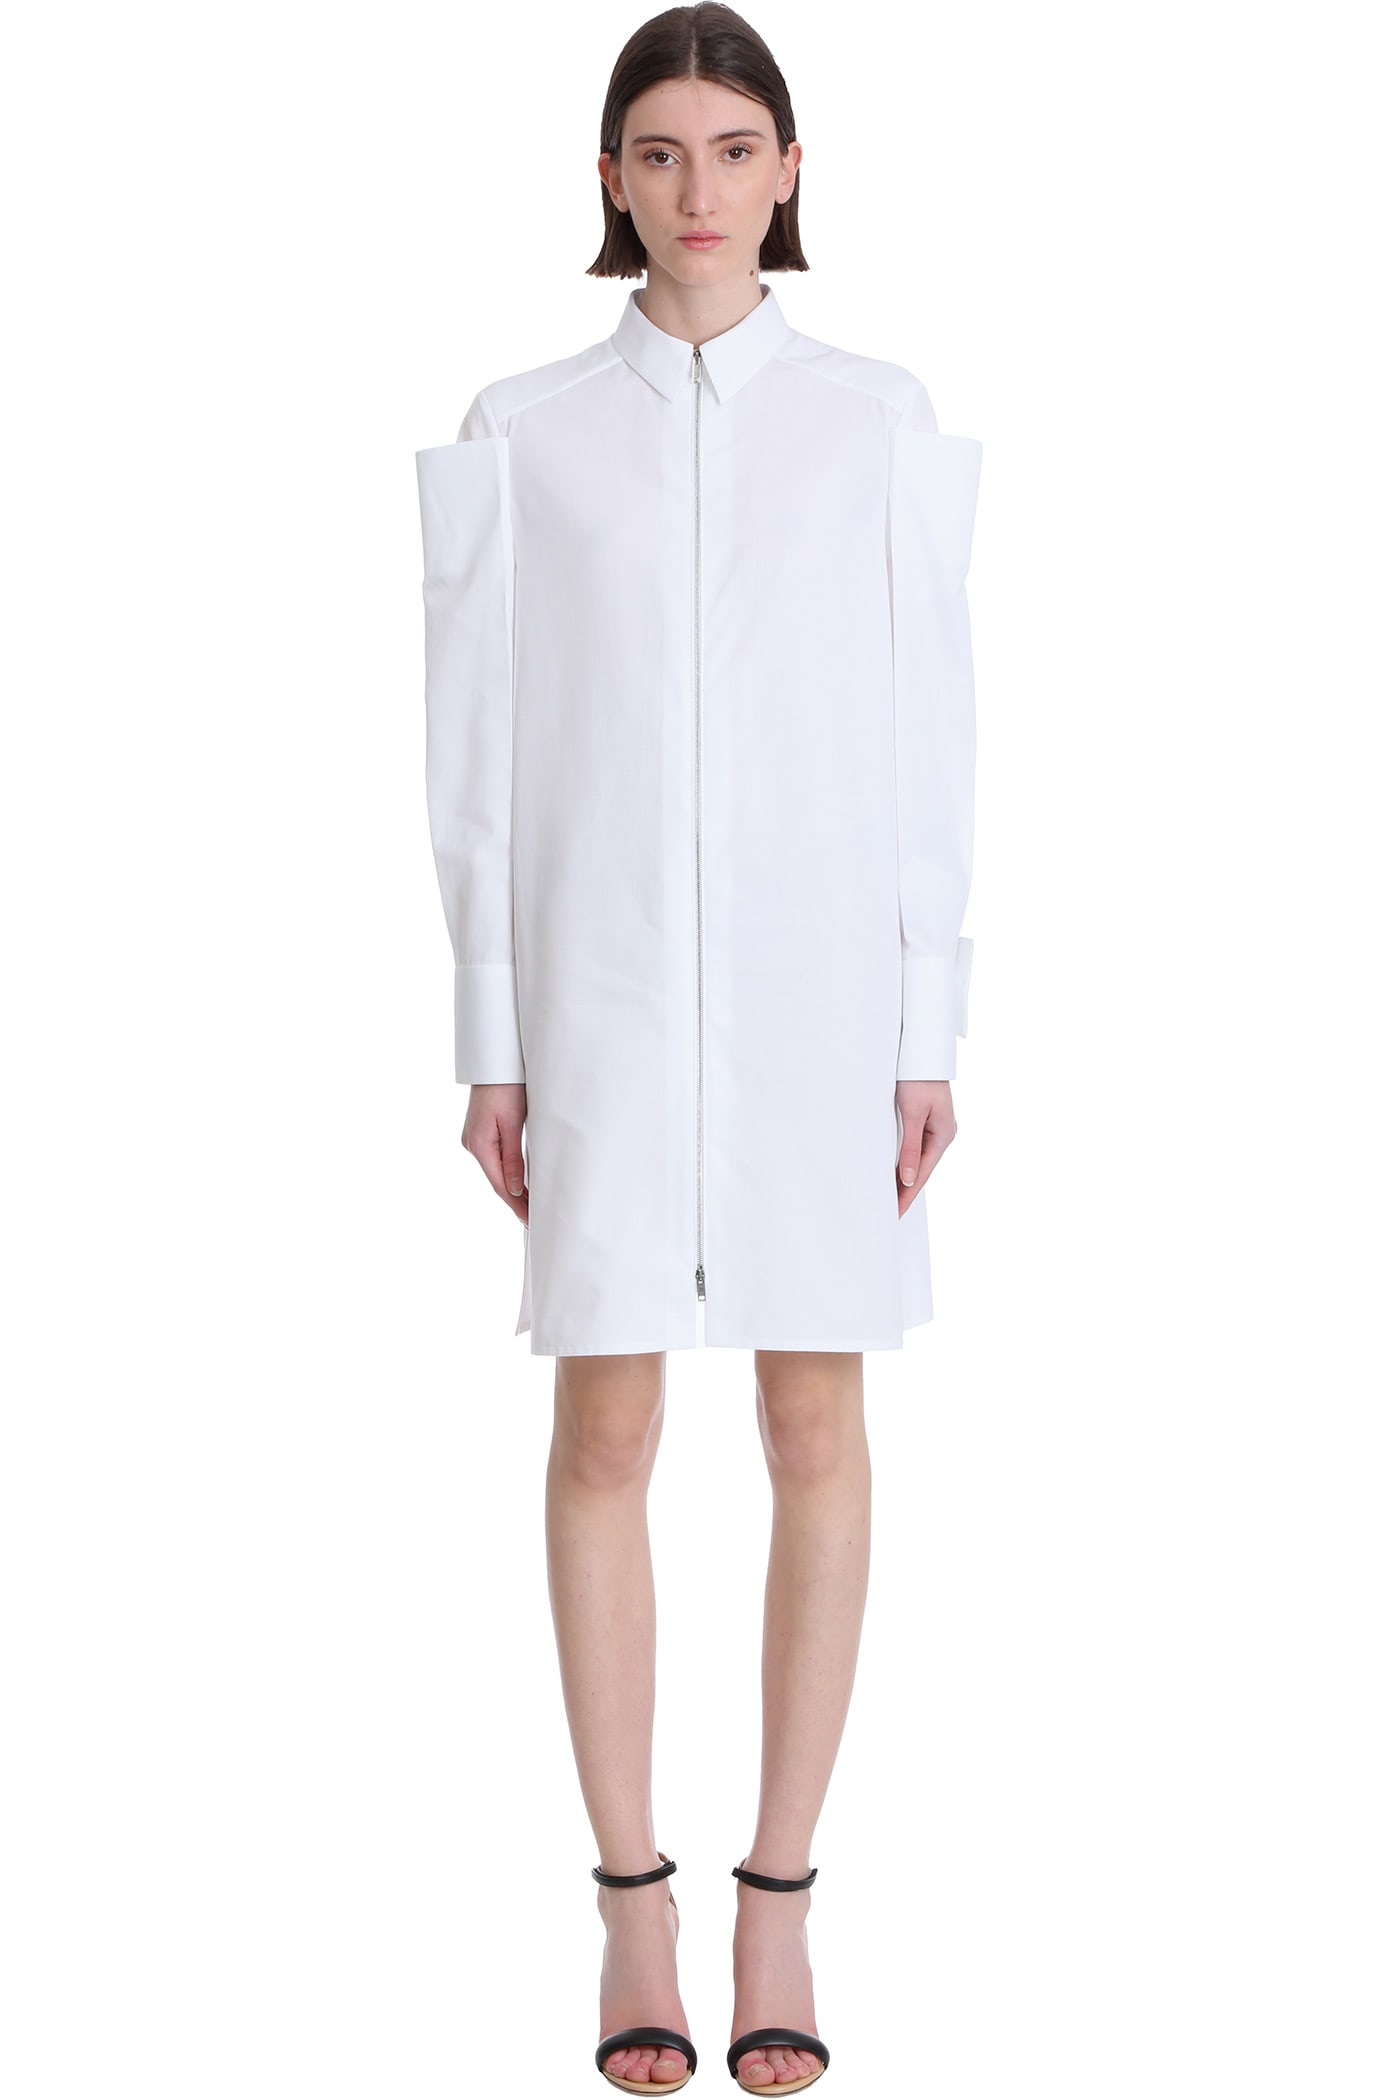 Buy Givenchy Dress In White Cotton online, shop Givenchy with free shipping